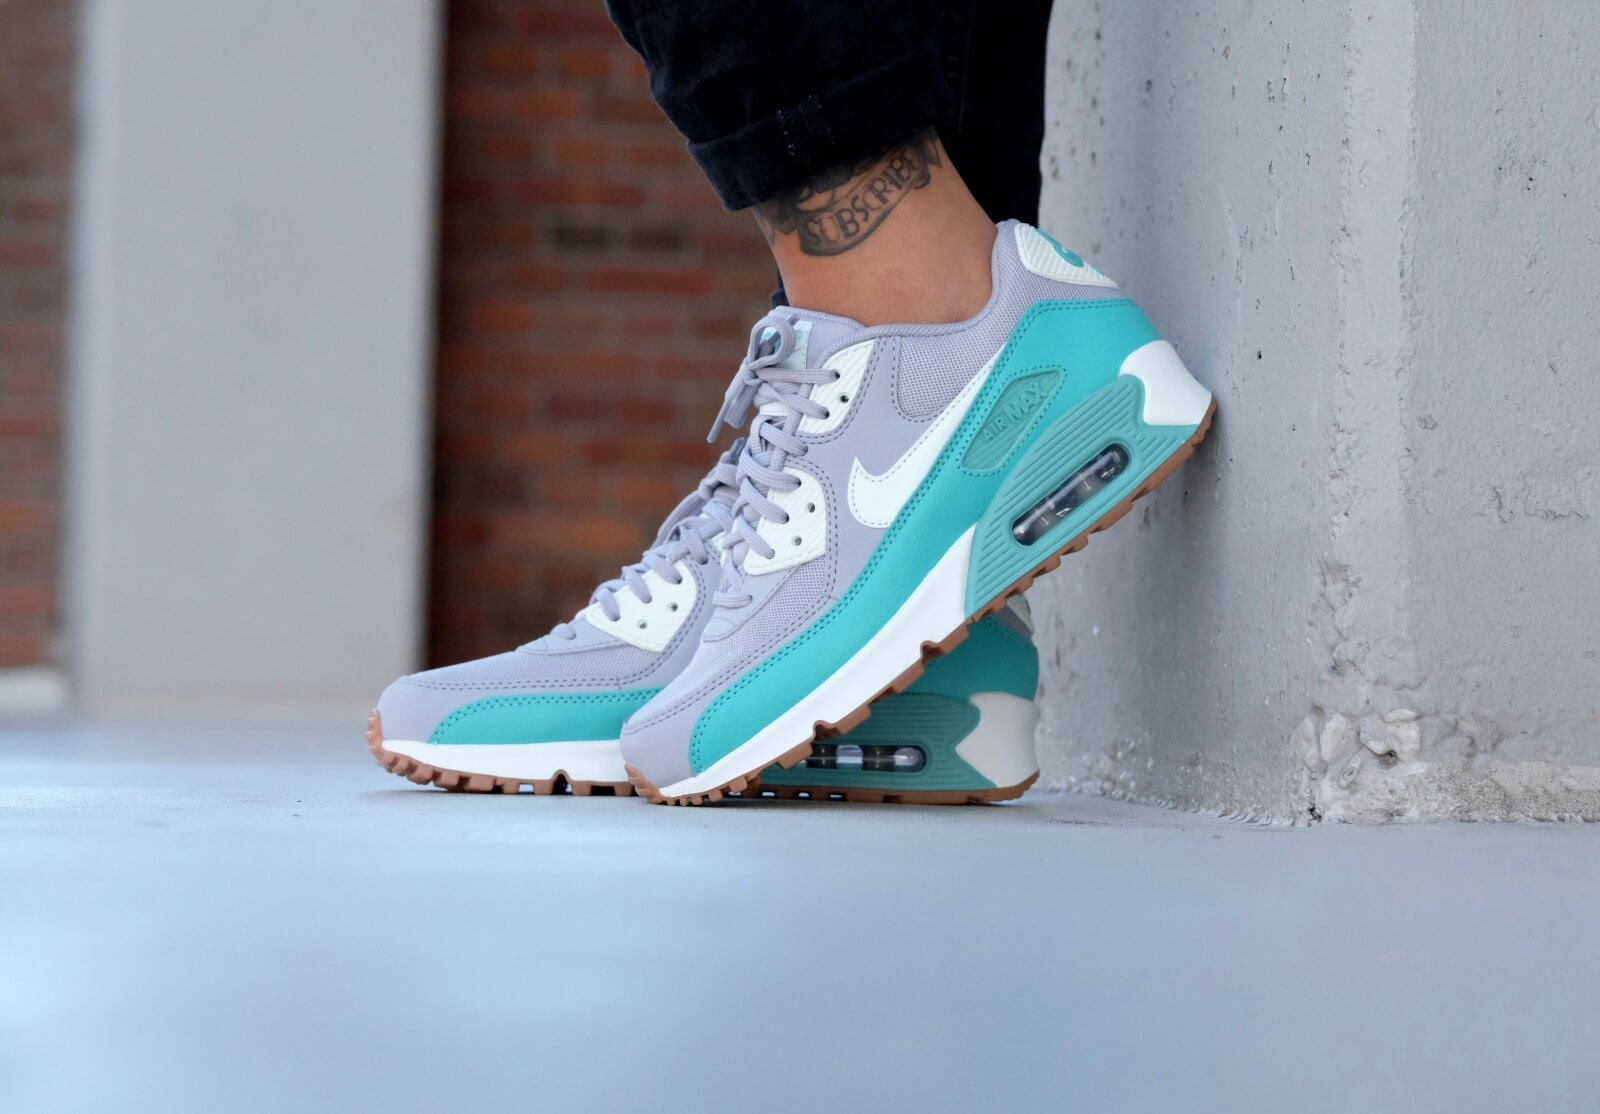 Nike WMNS Air Max 90 Essential Wolf grey/ Barely green-Washed Teal